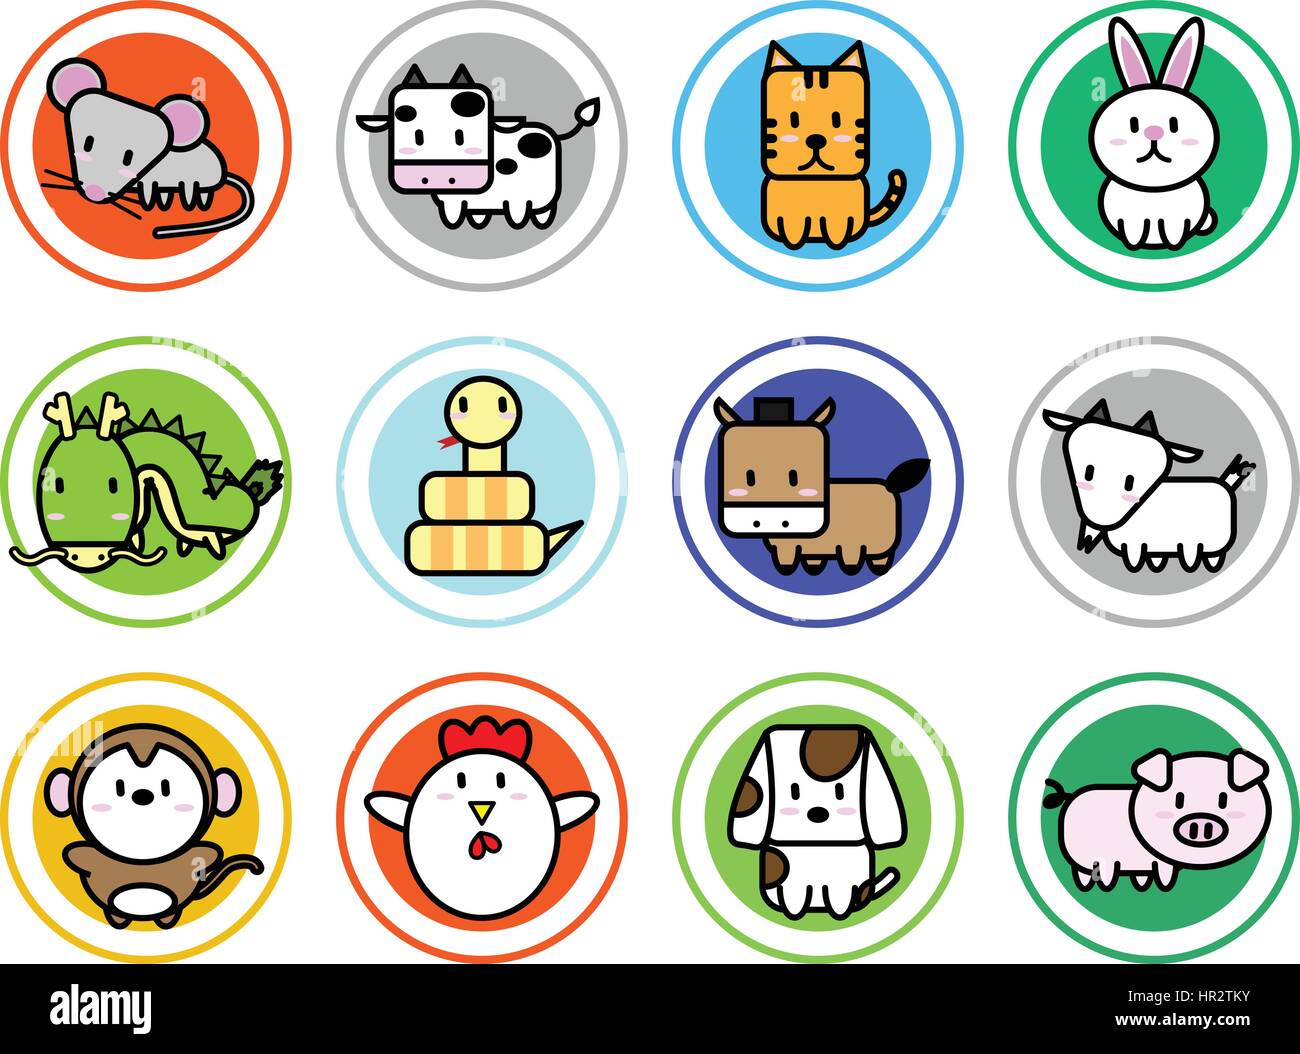 Cute Cartoon Icon Vector For Chinese Zodiac Calendar Stock